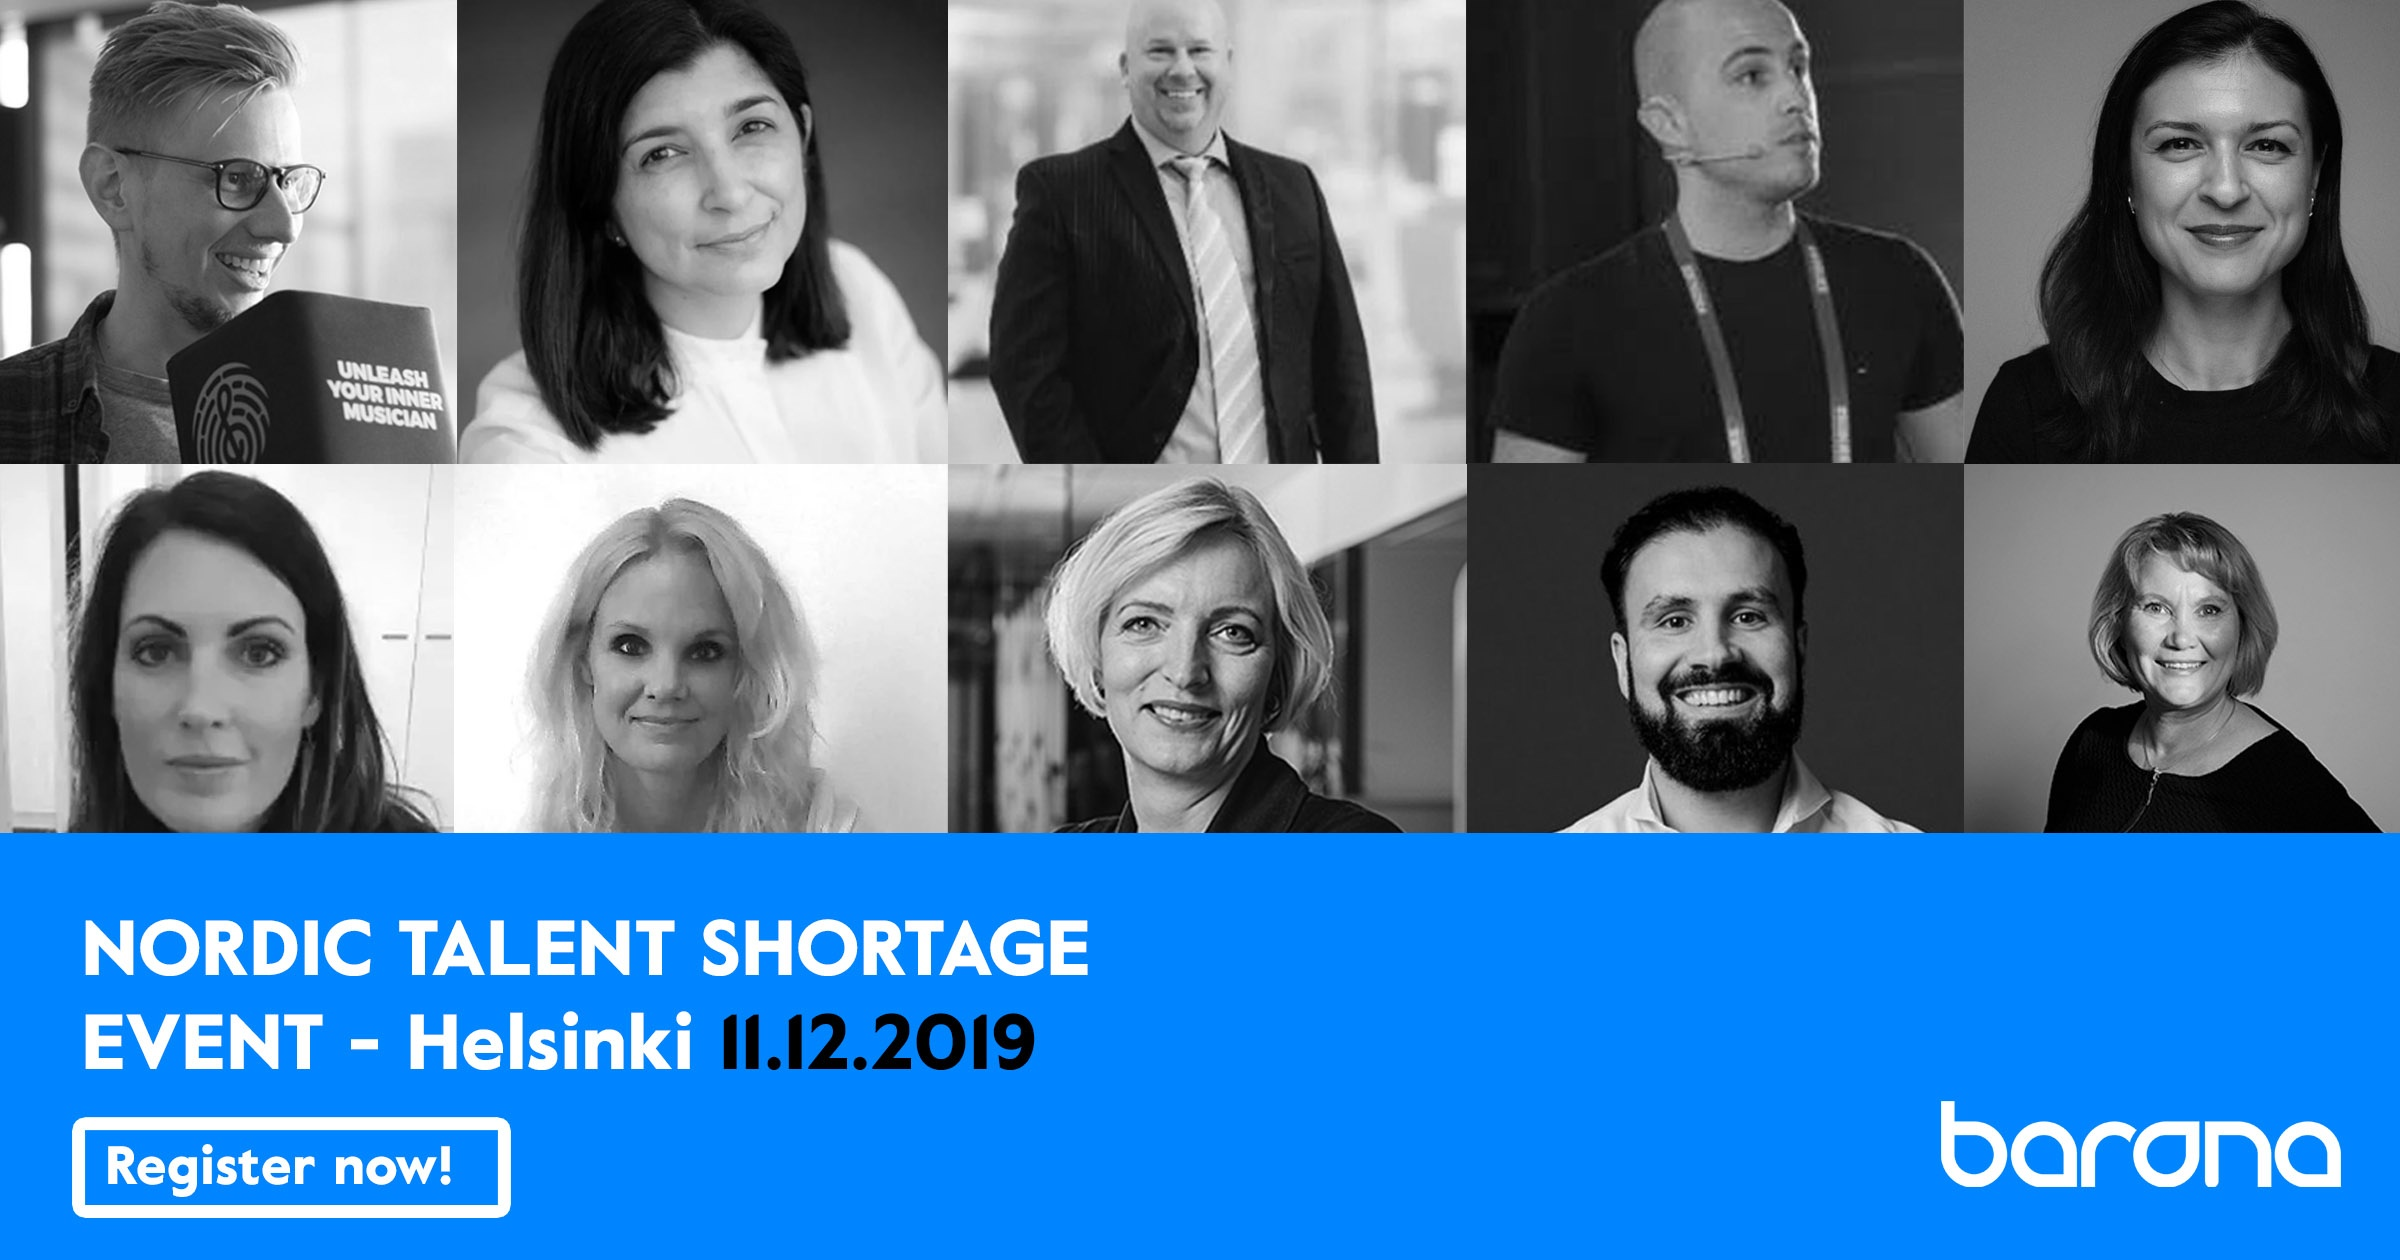 Nordic talent shortage event - get your seat!